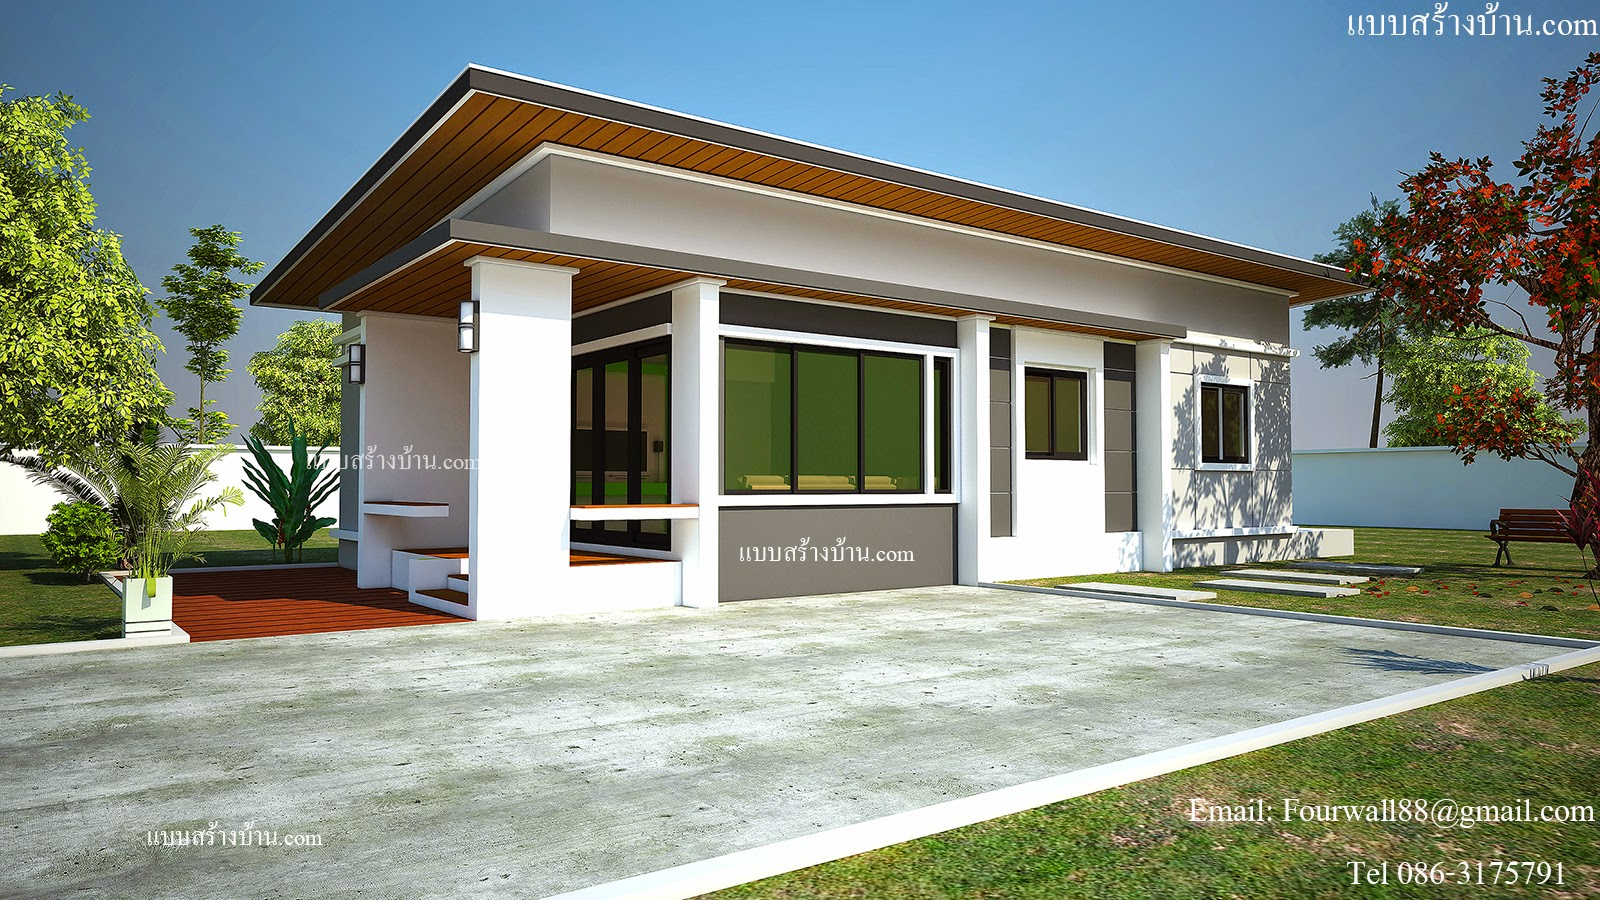 This modern single-storey house has three bedrooms and is fully customisable. [Image Credit: Home Builders]